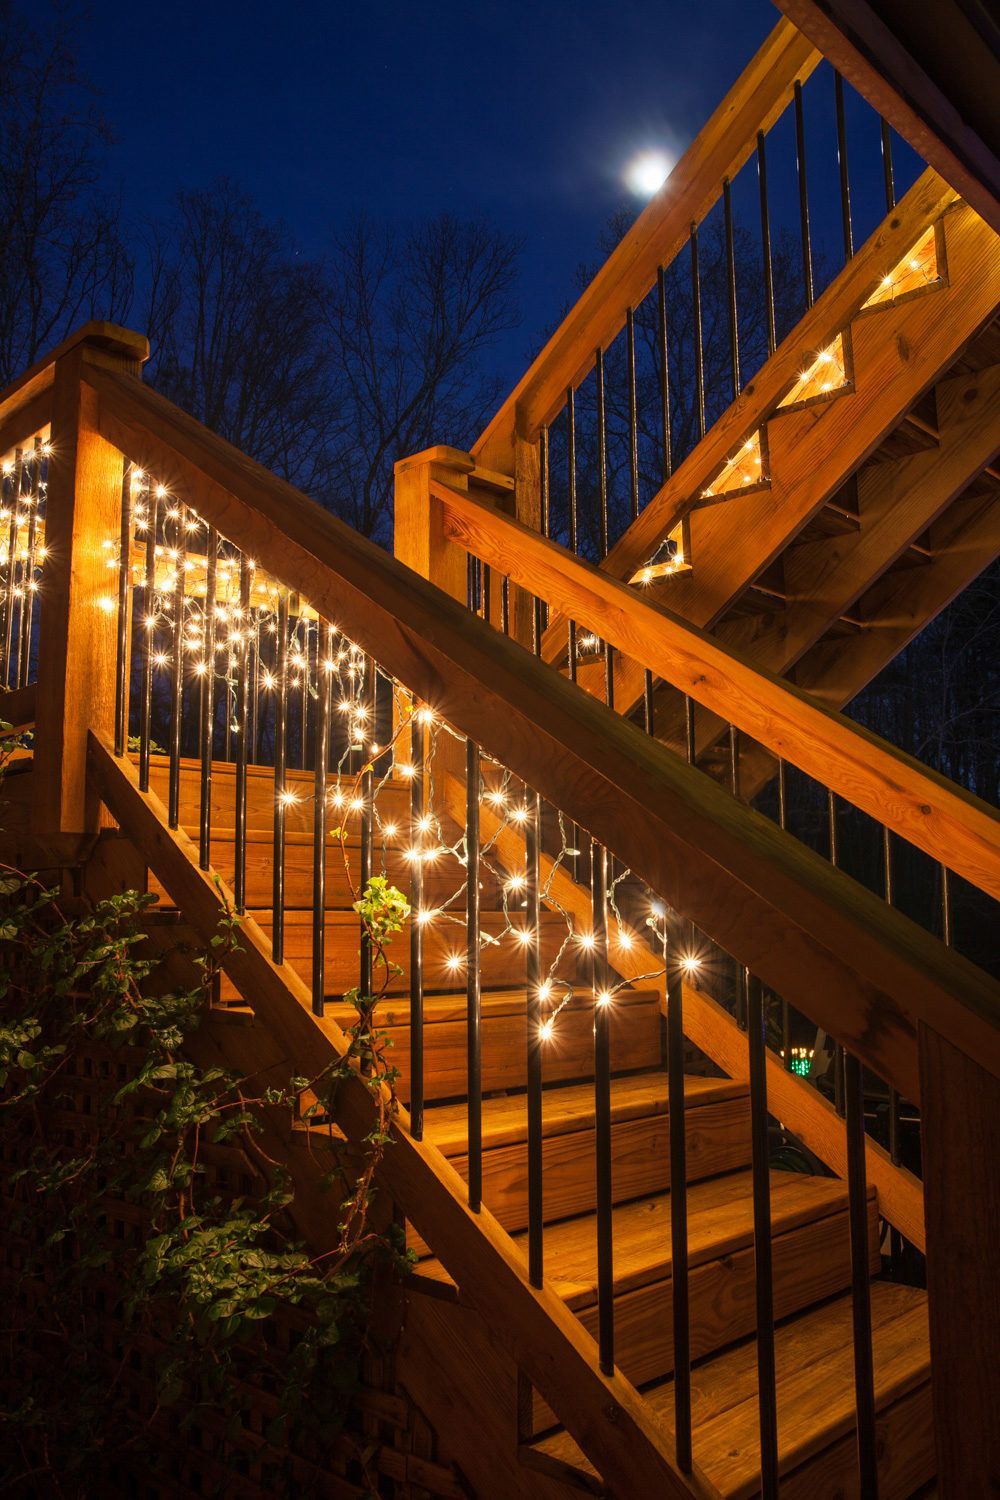 See how fast our deck lighting ideas will inspire you deck here is a deck lighting idea for inspiration hang white lights along stairs and railings for parties and elegant soirees aloadofball Images